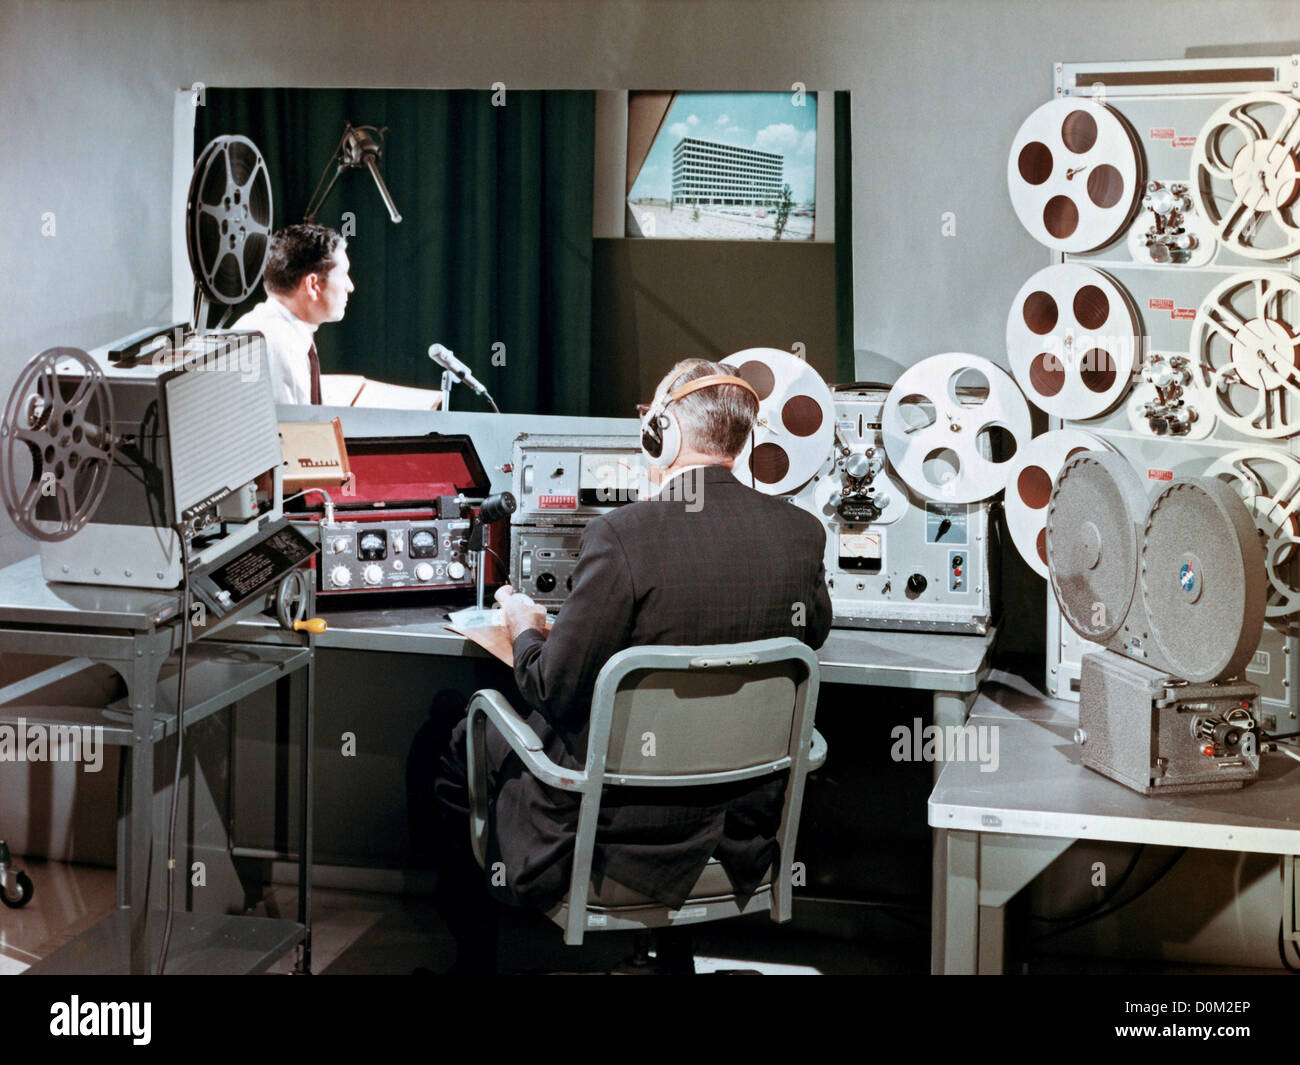 State of the art voice and recording studios for film work, scoring, dubbing and interlock playback, circa 1964. - Stock Image